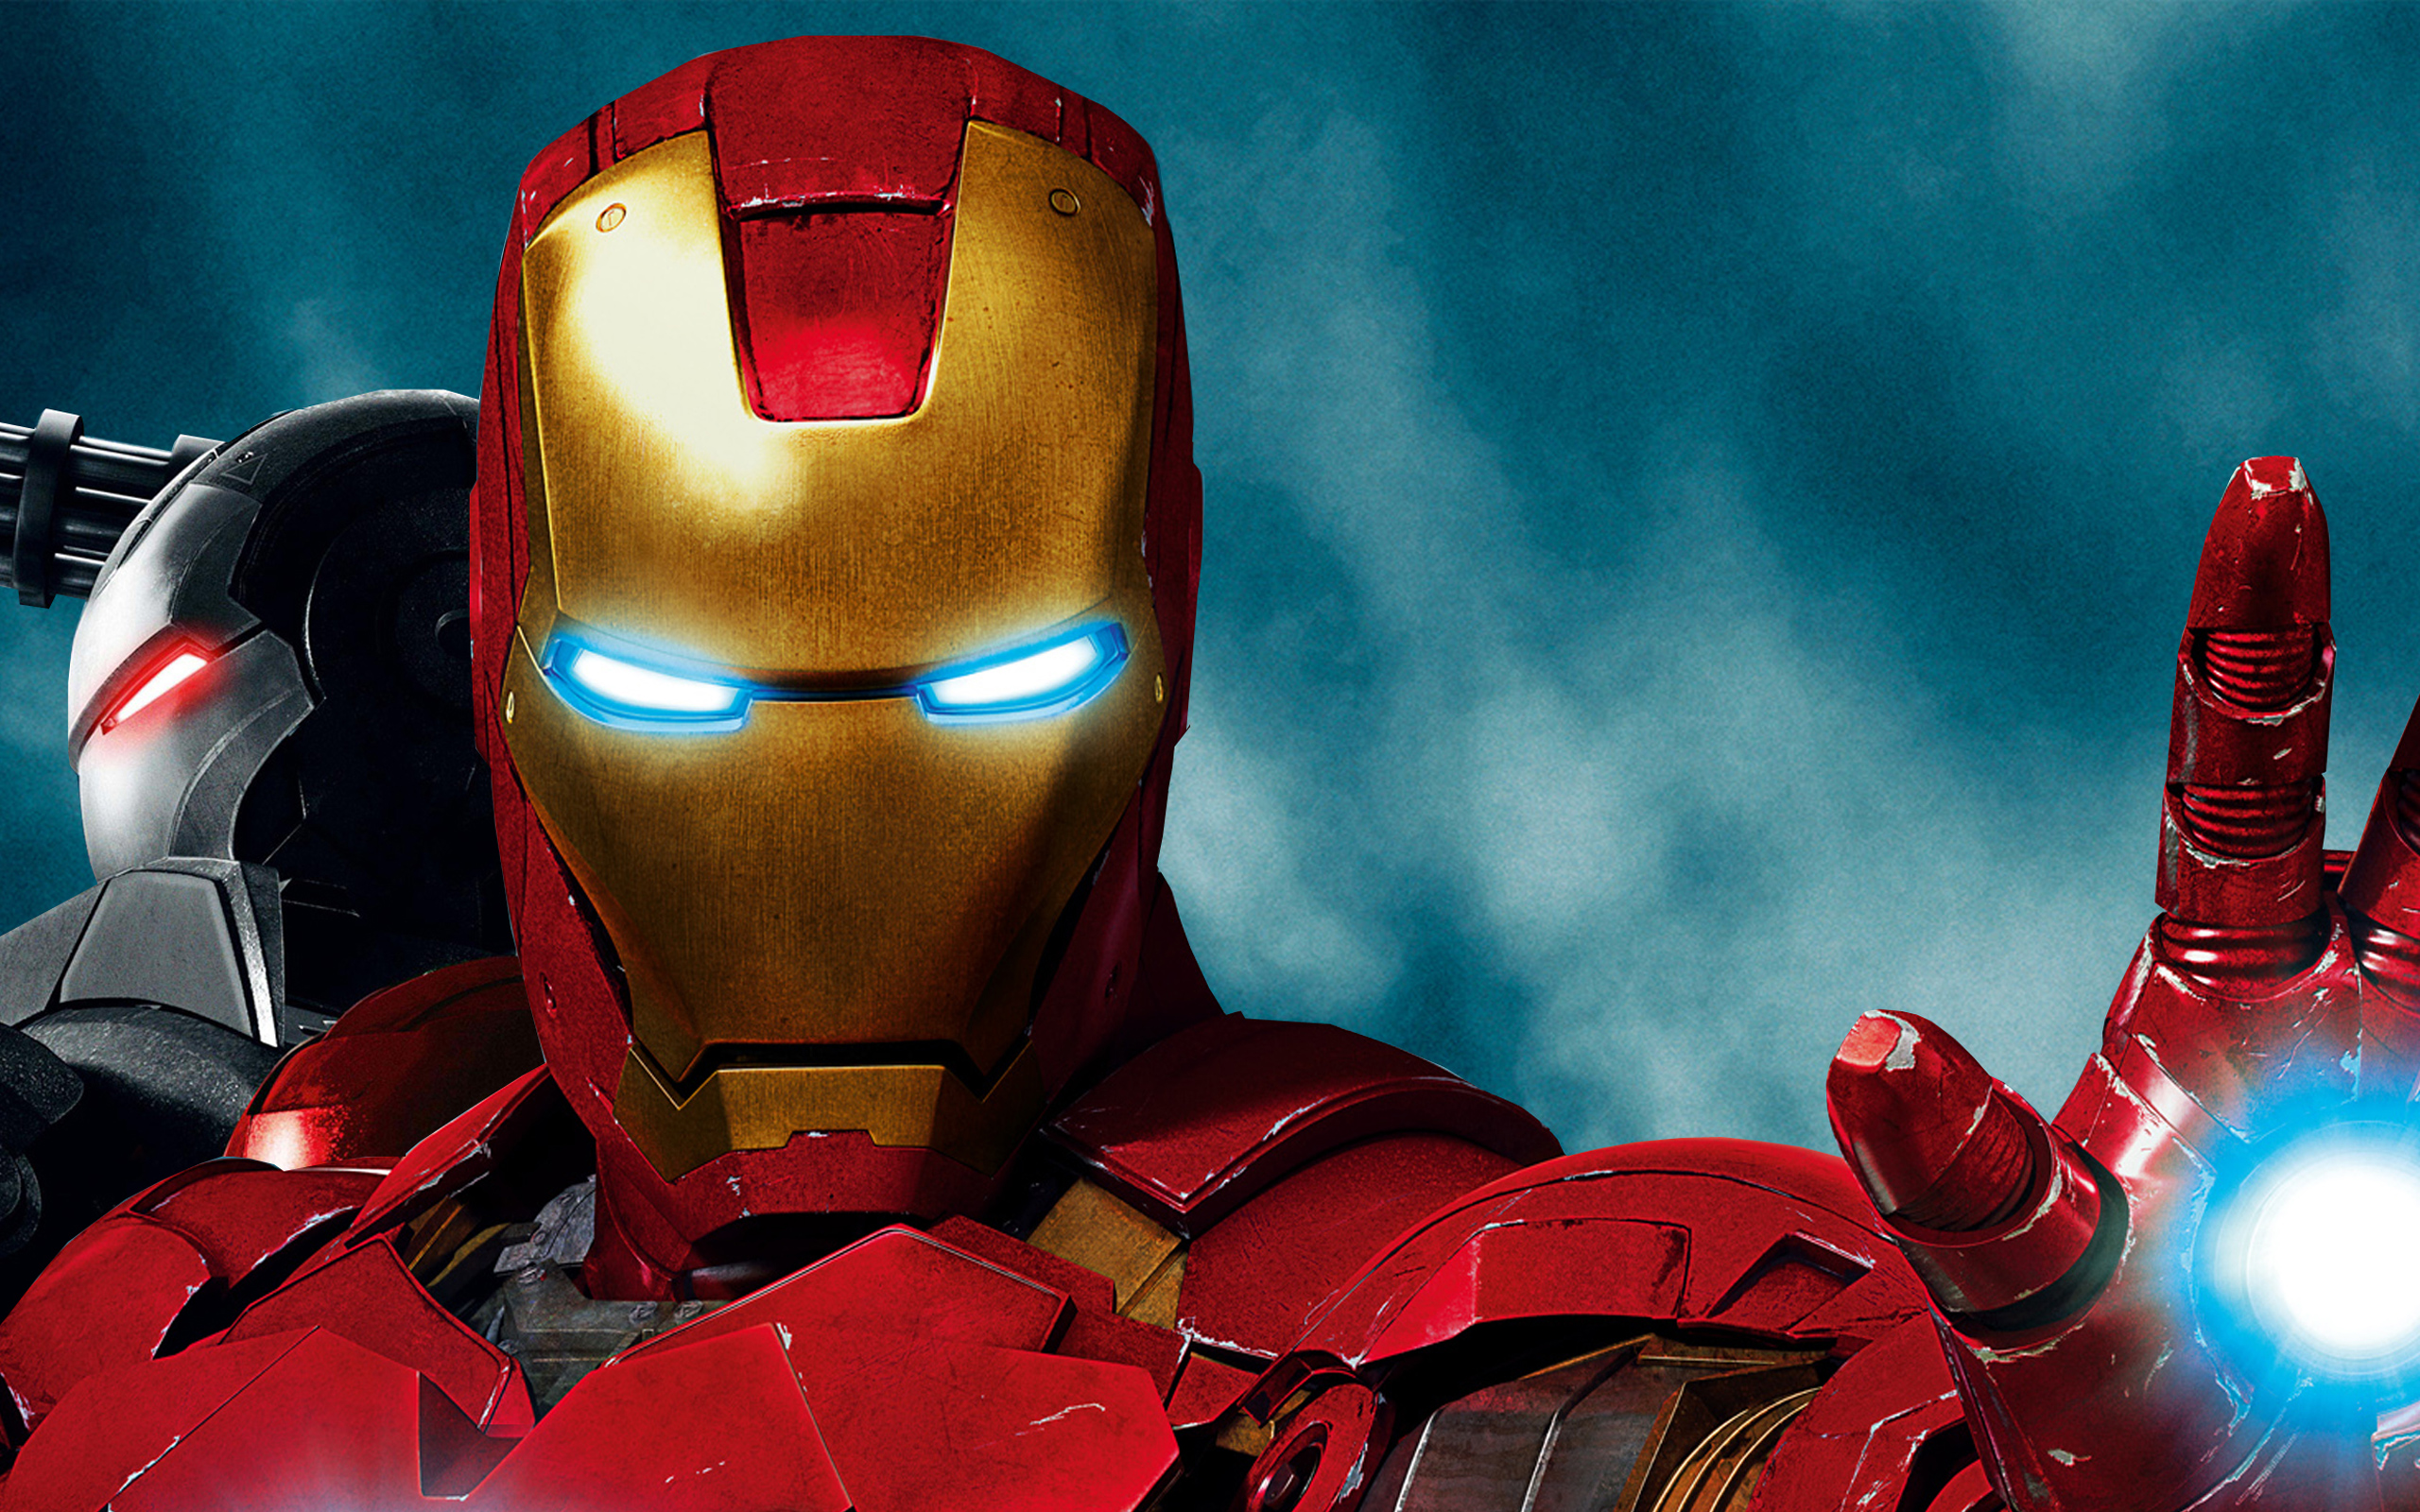 Amazing Iron Man 2 Wallpapers HD Wallpapers 2560x1600